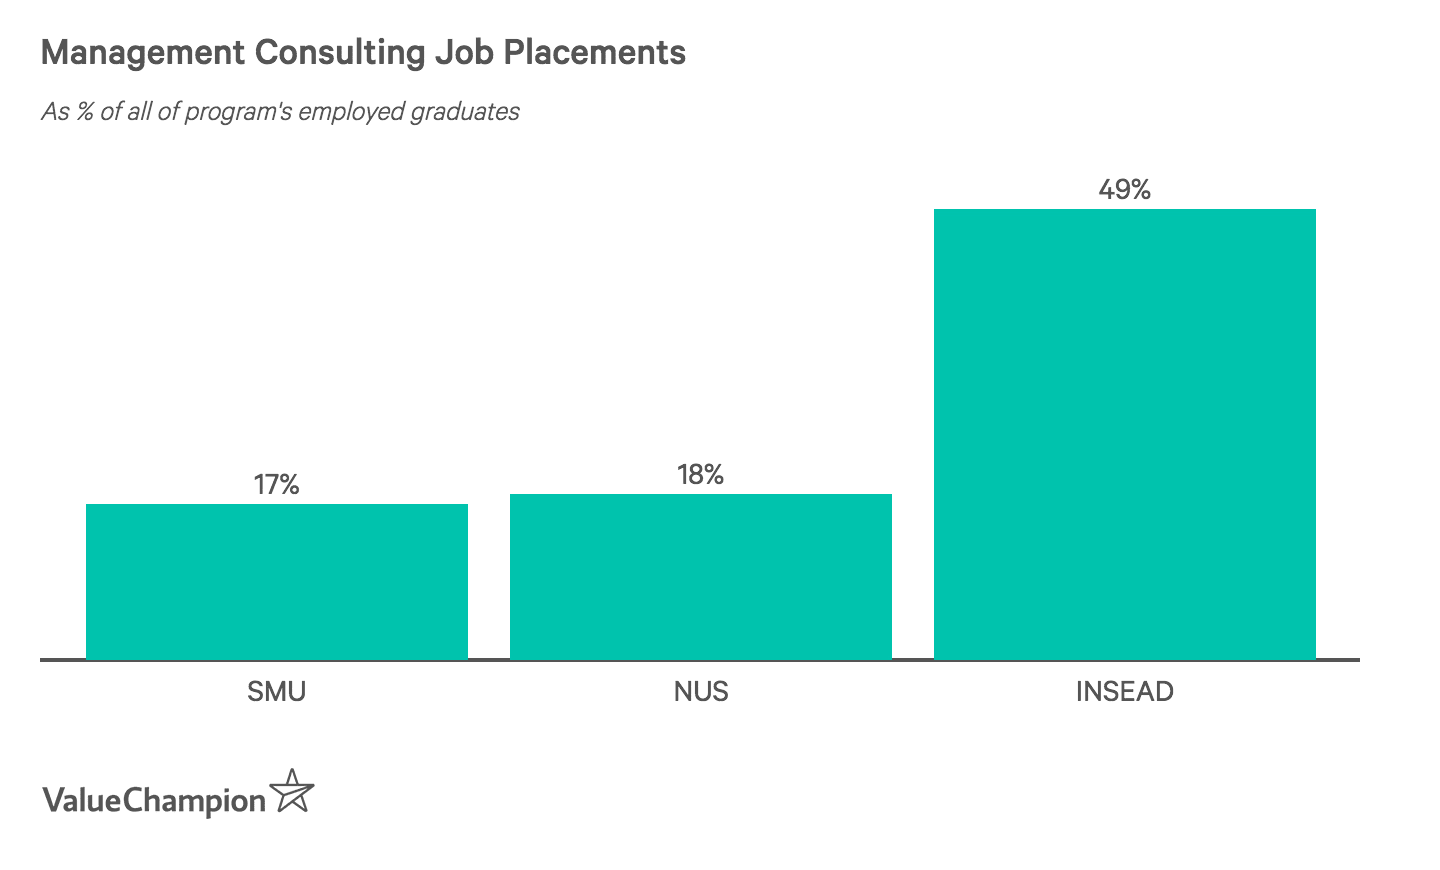 Financial Services Job Placements by School